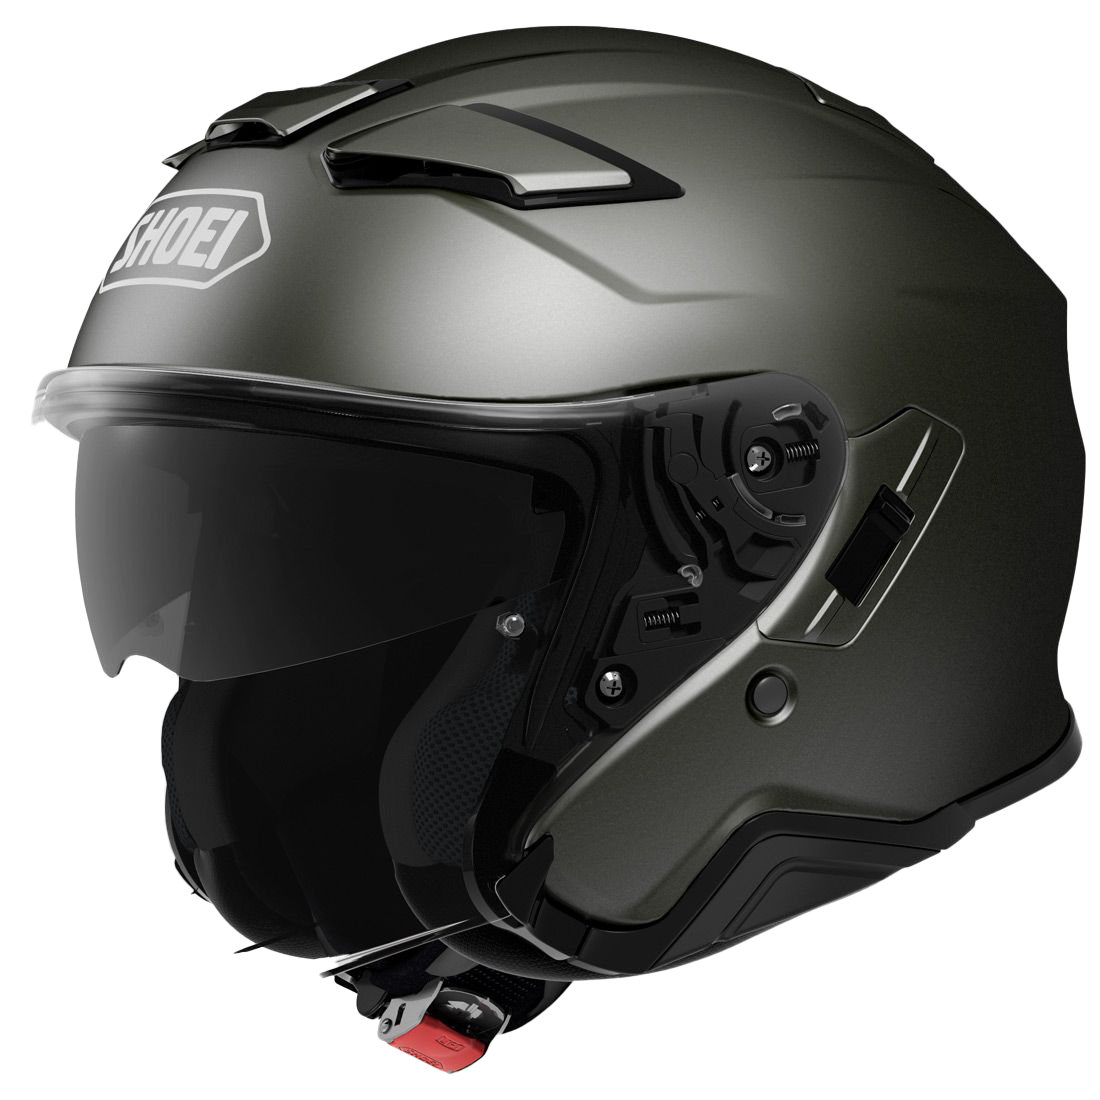 01 SHOEI J-CRUISE II ANTHRACITE METALLIC 1 1.png